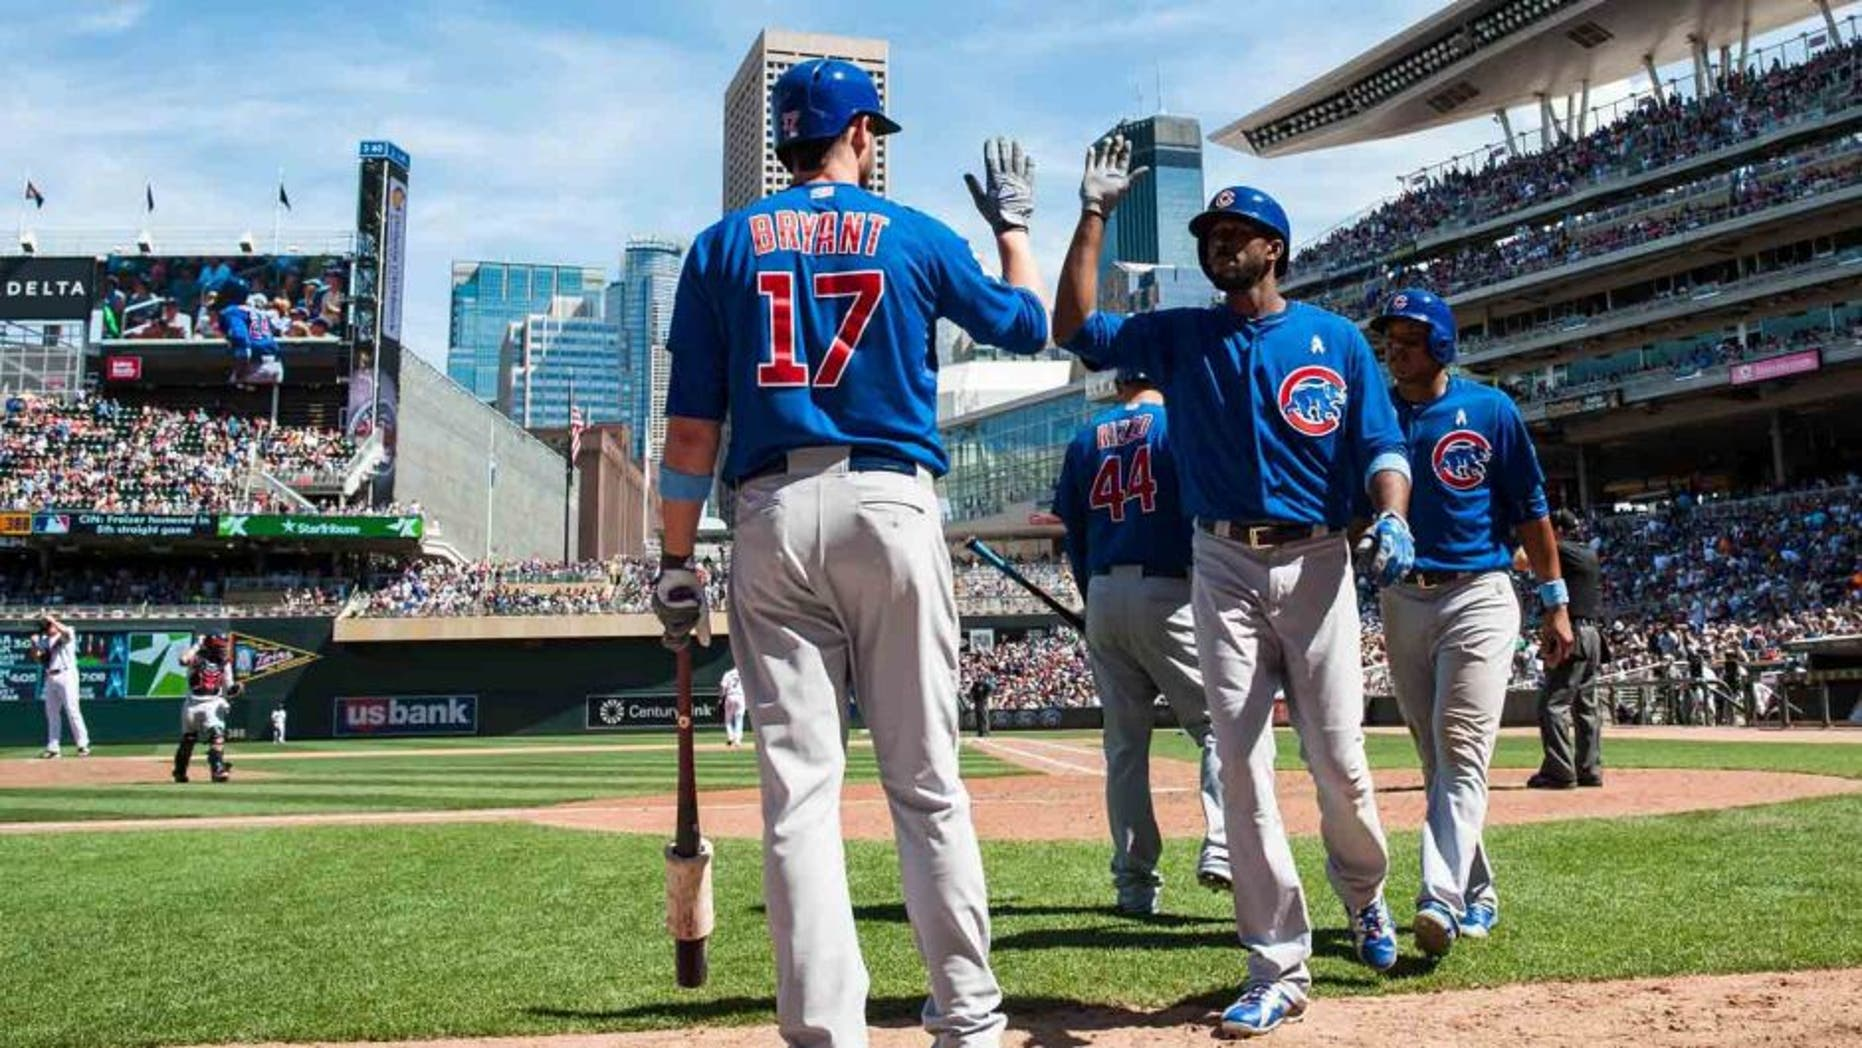 Jun 21, 2015; Minneapolis, MN, USA; Chicago Cubs center fielder Dexter Fowler (24) is congratulated by third baseman Kris Bryant (17) after hitting a grand slam home run during the eighth inning against the Minnesota Twins at Target Field. The Cubs won 8-0.